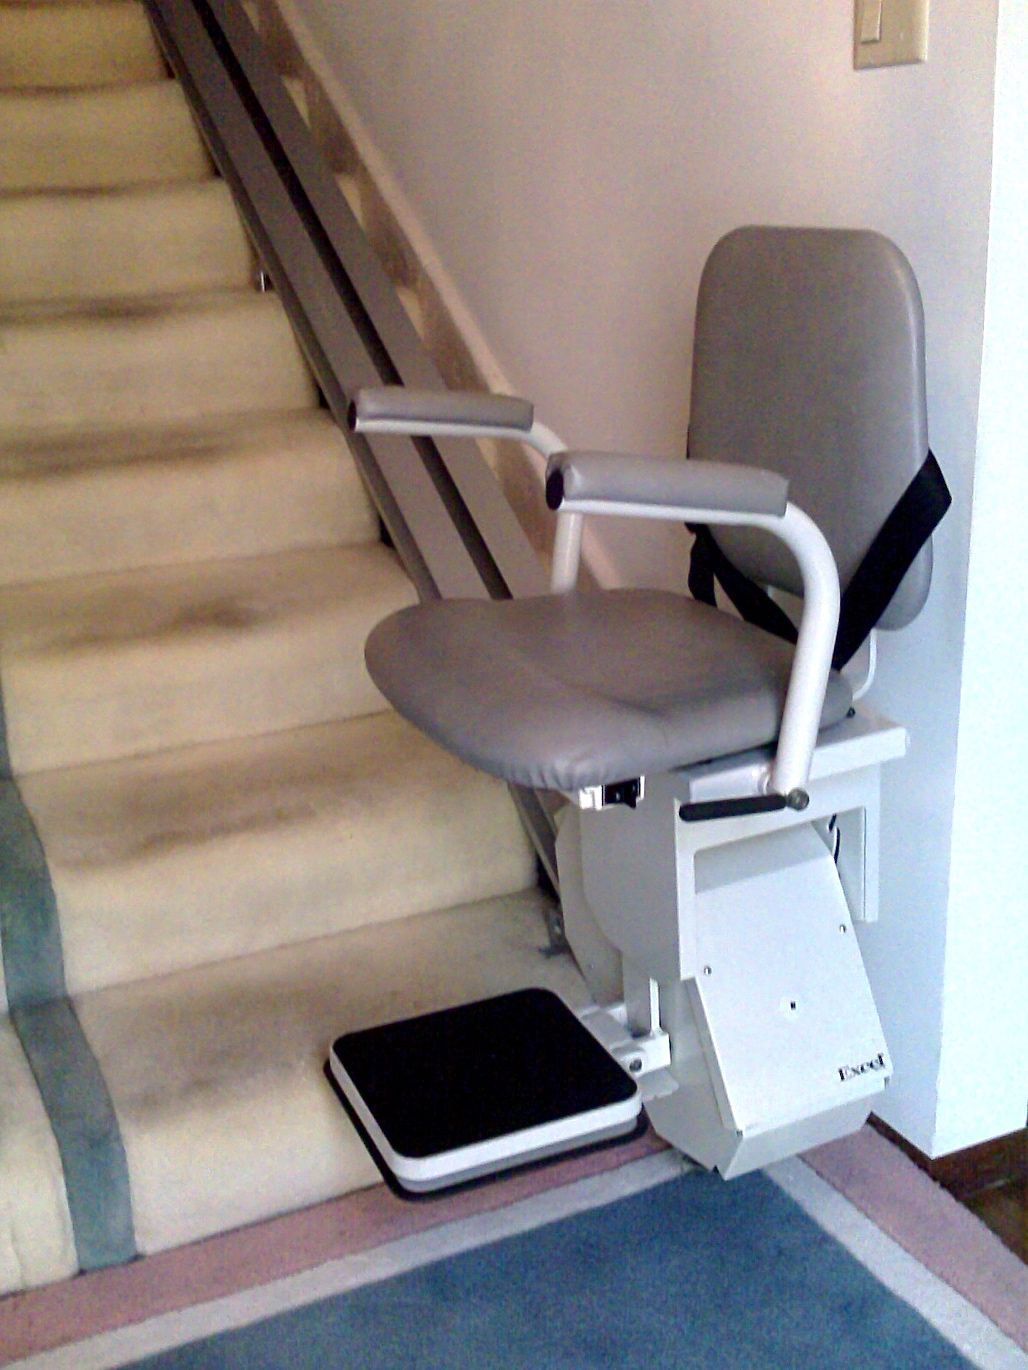 Find Great Deals Upon Ebay For Stair Chair Lift In Lifts And Lift Chairs For Mobility Equipment Shop When Confidence Stairs De Chair Chair Lift Lift Chairs